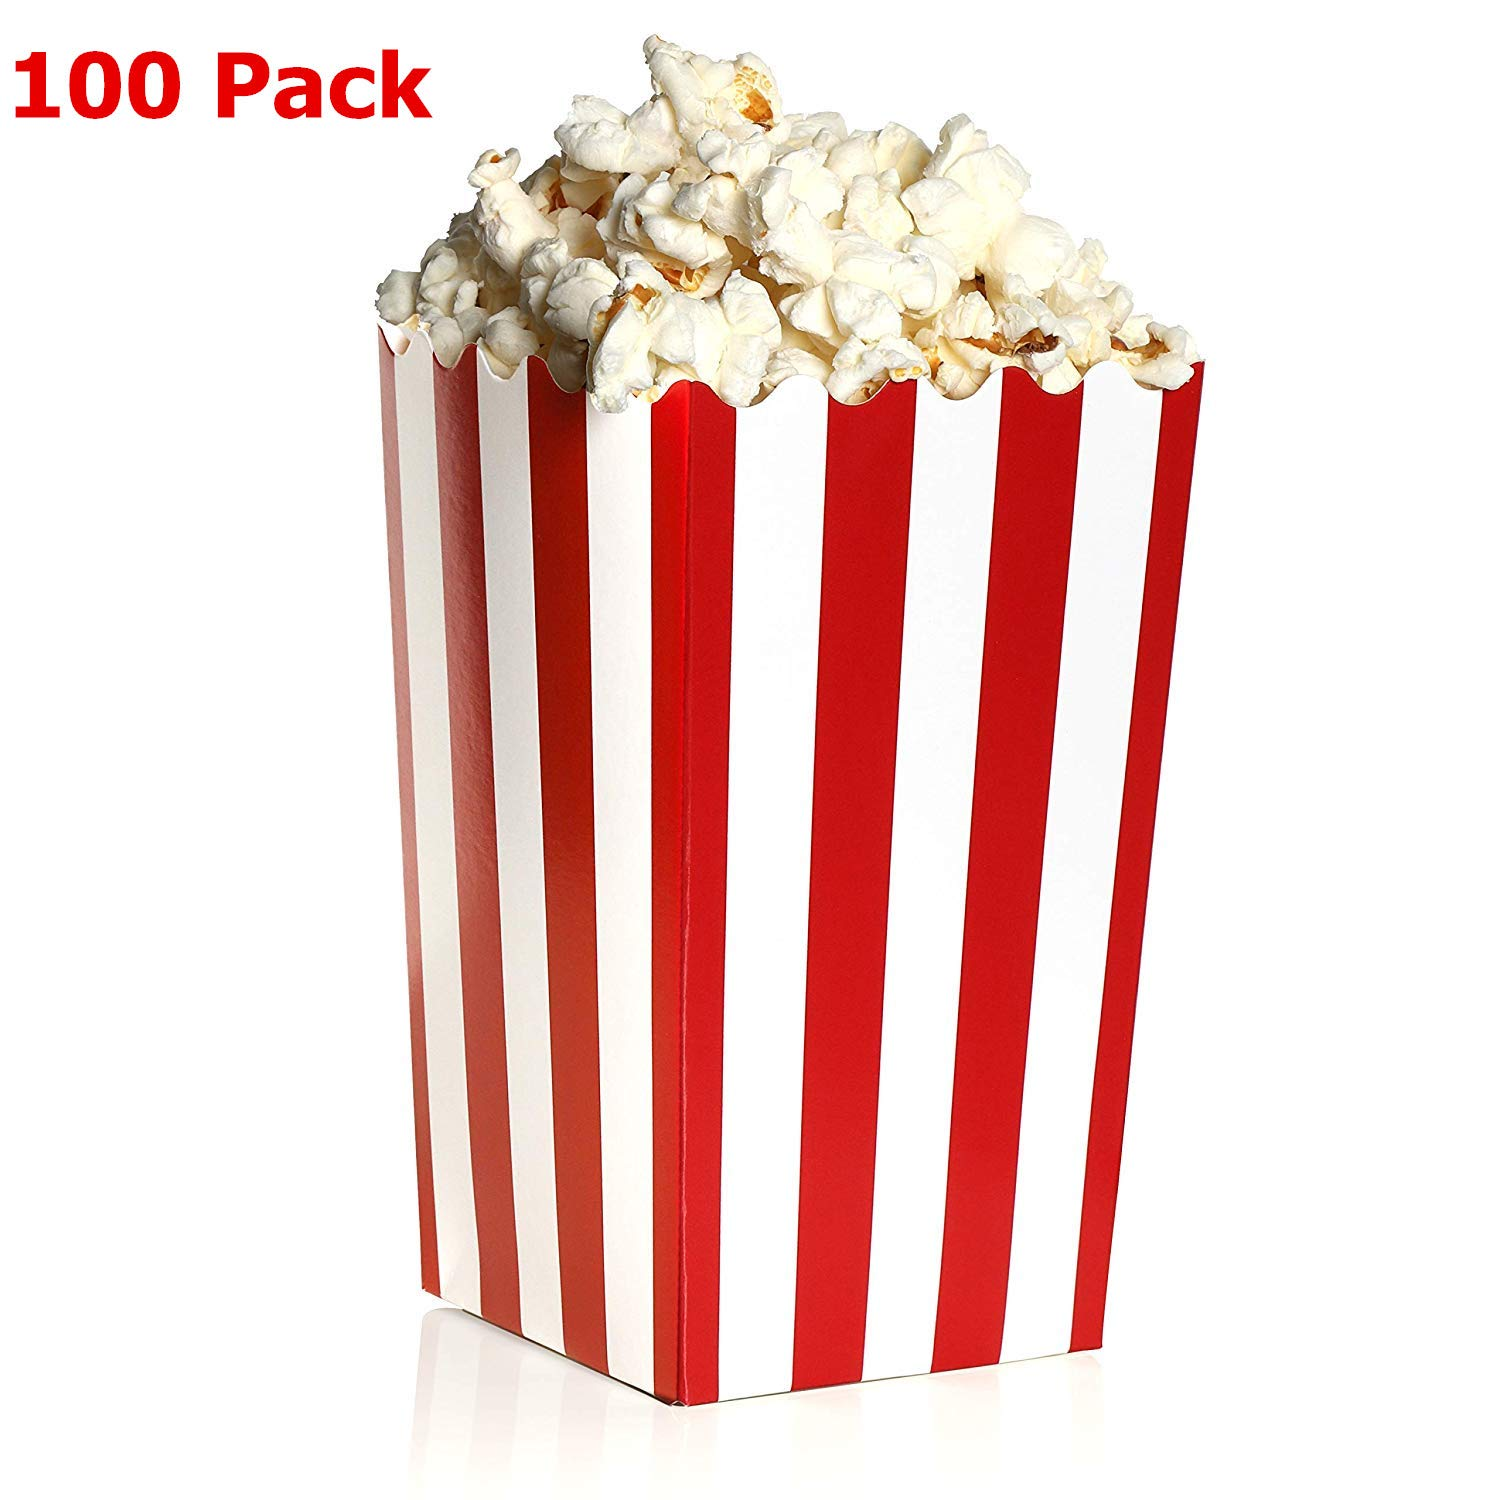 100 Pack Popcorn Favor Boxes, Mini Popcorn Containers, Paper Popcorn Party Supplies for Movie Nights, Carnival Parties, Red and White